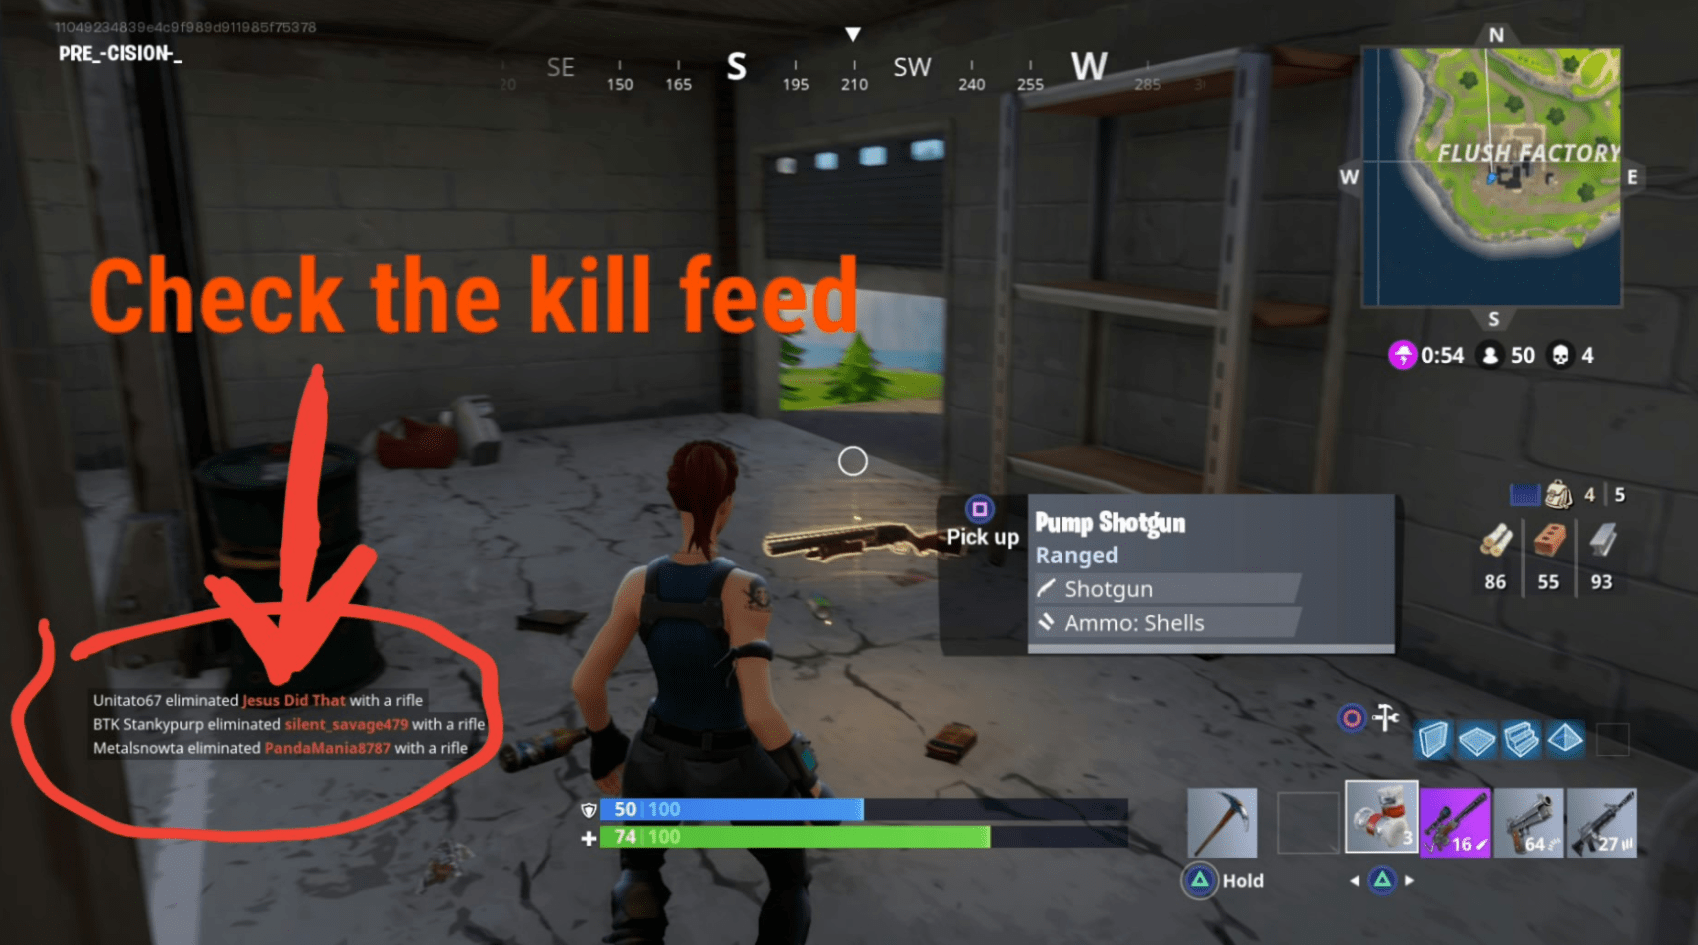 Fortnite: Is There PS4 and PC Crossplay? - twinfinite.net